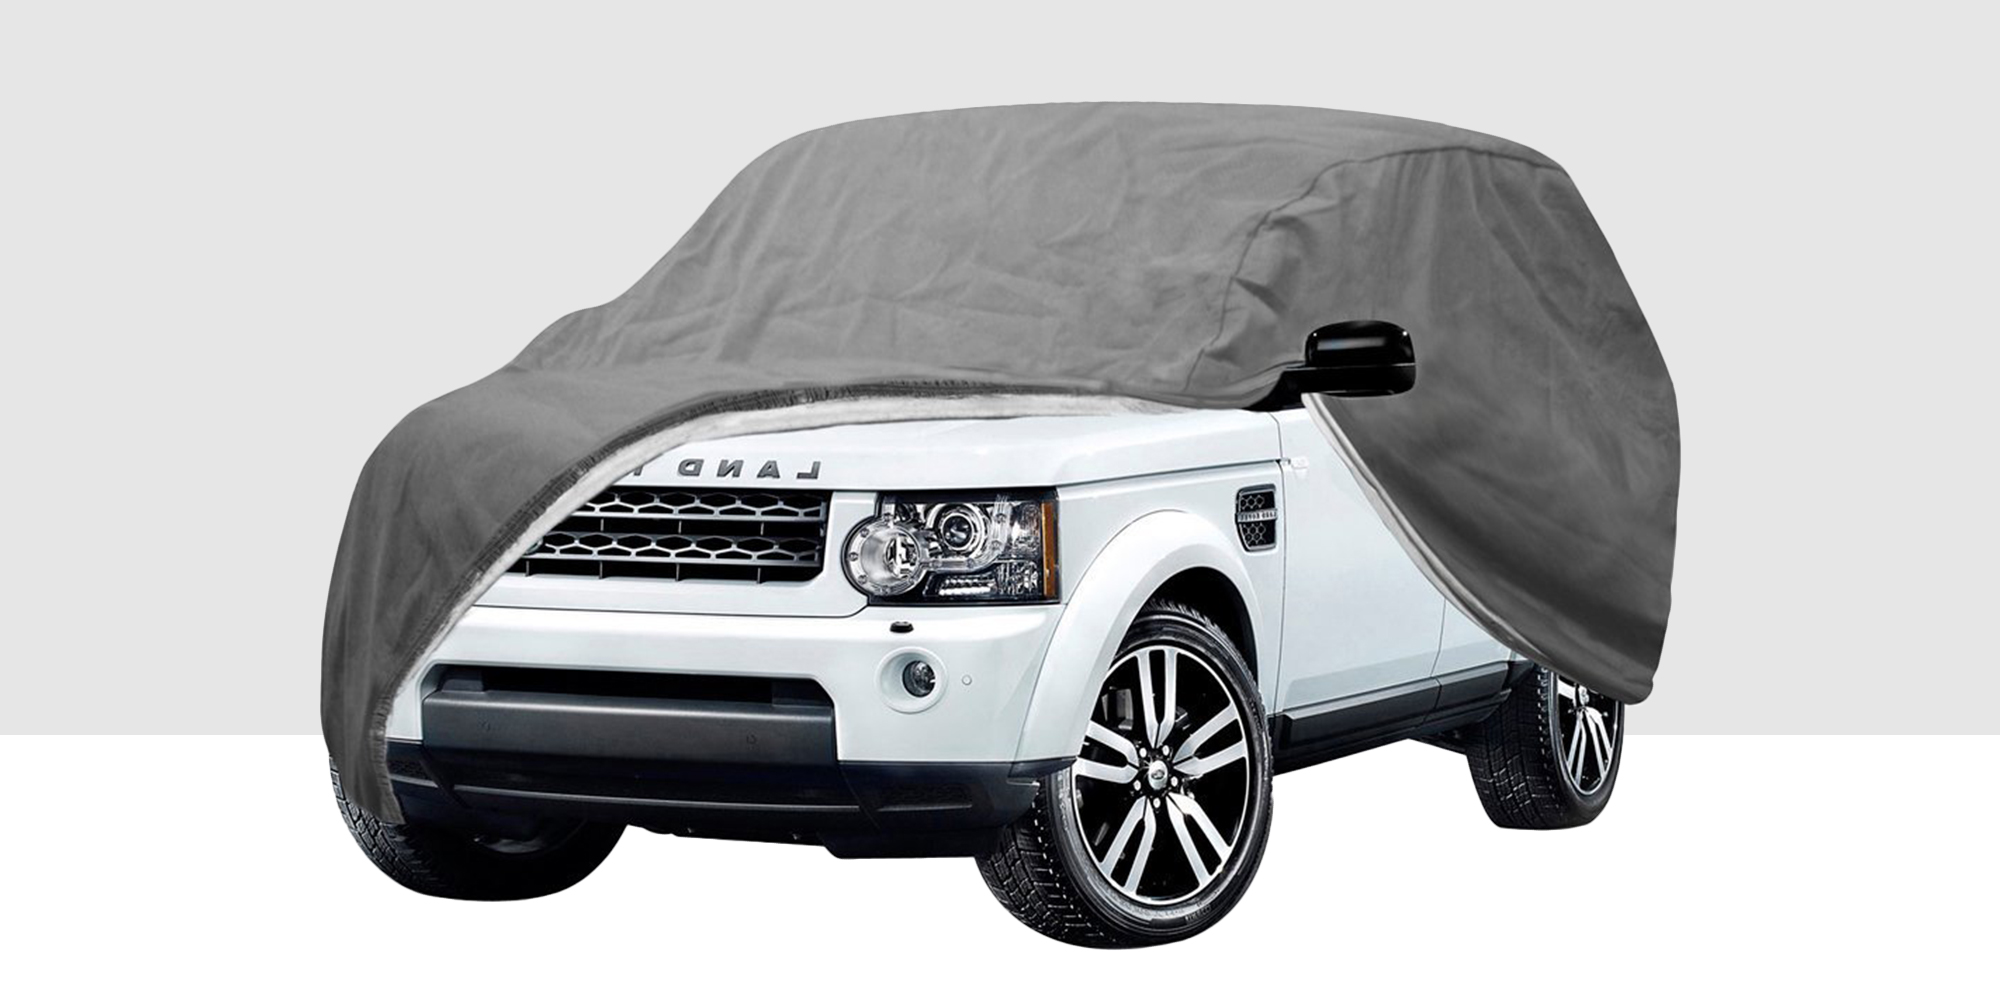 7 best car covers and canopies 2018 weatherproof outdoor for Automobile decoration accessories